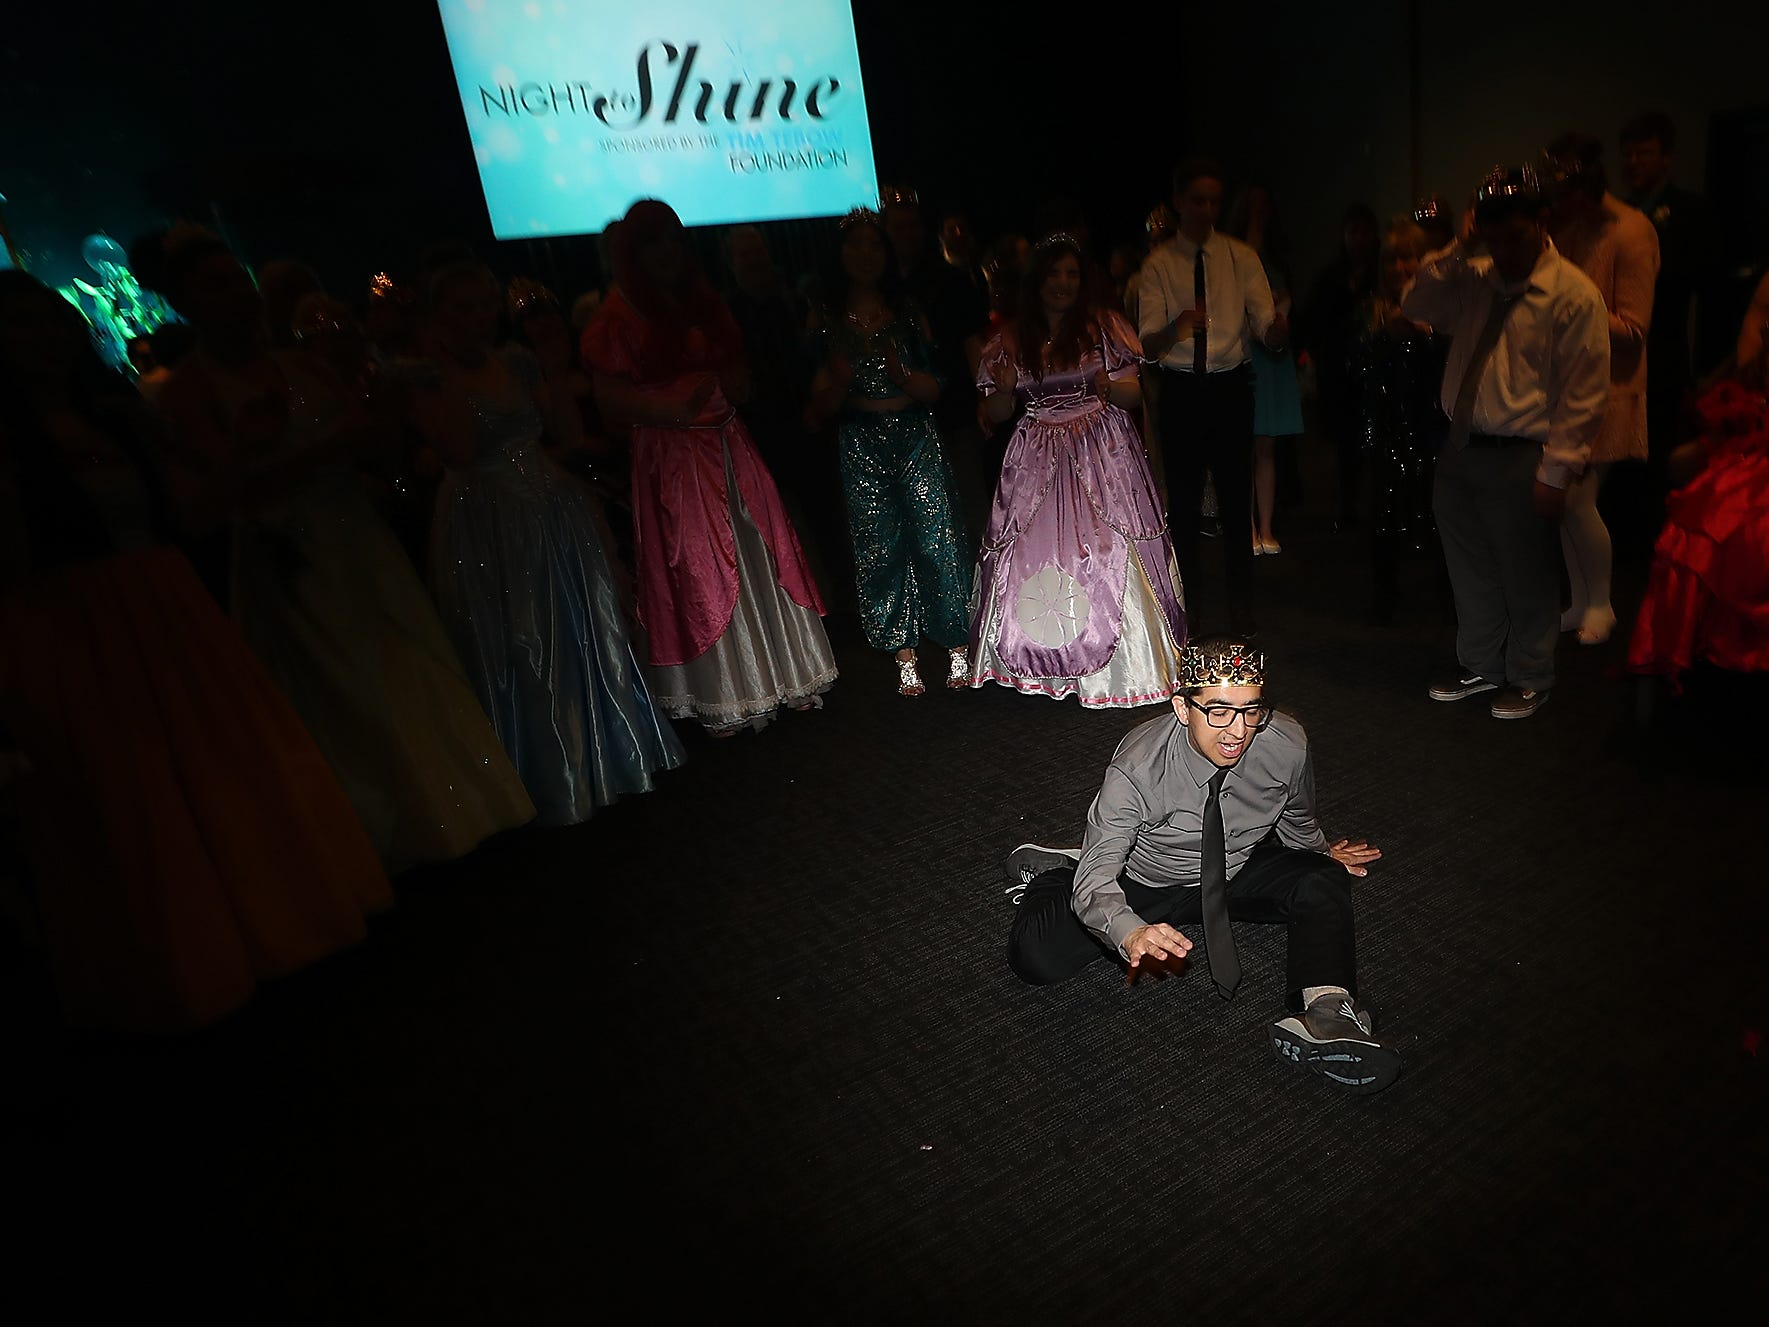 Charlie Yang hits the floor as he attempts the splits while dancing during the Night To Shine at the newlife Training & Events Center in Silverdale on Friday, March 8, 2019.